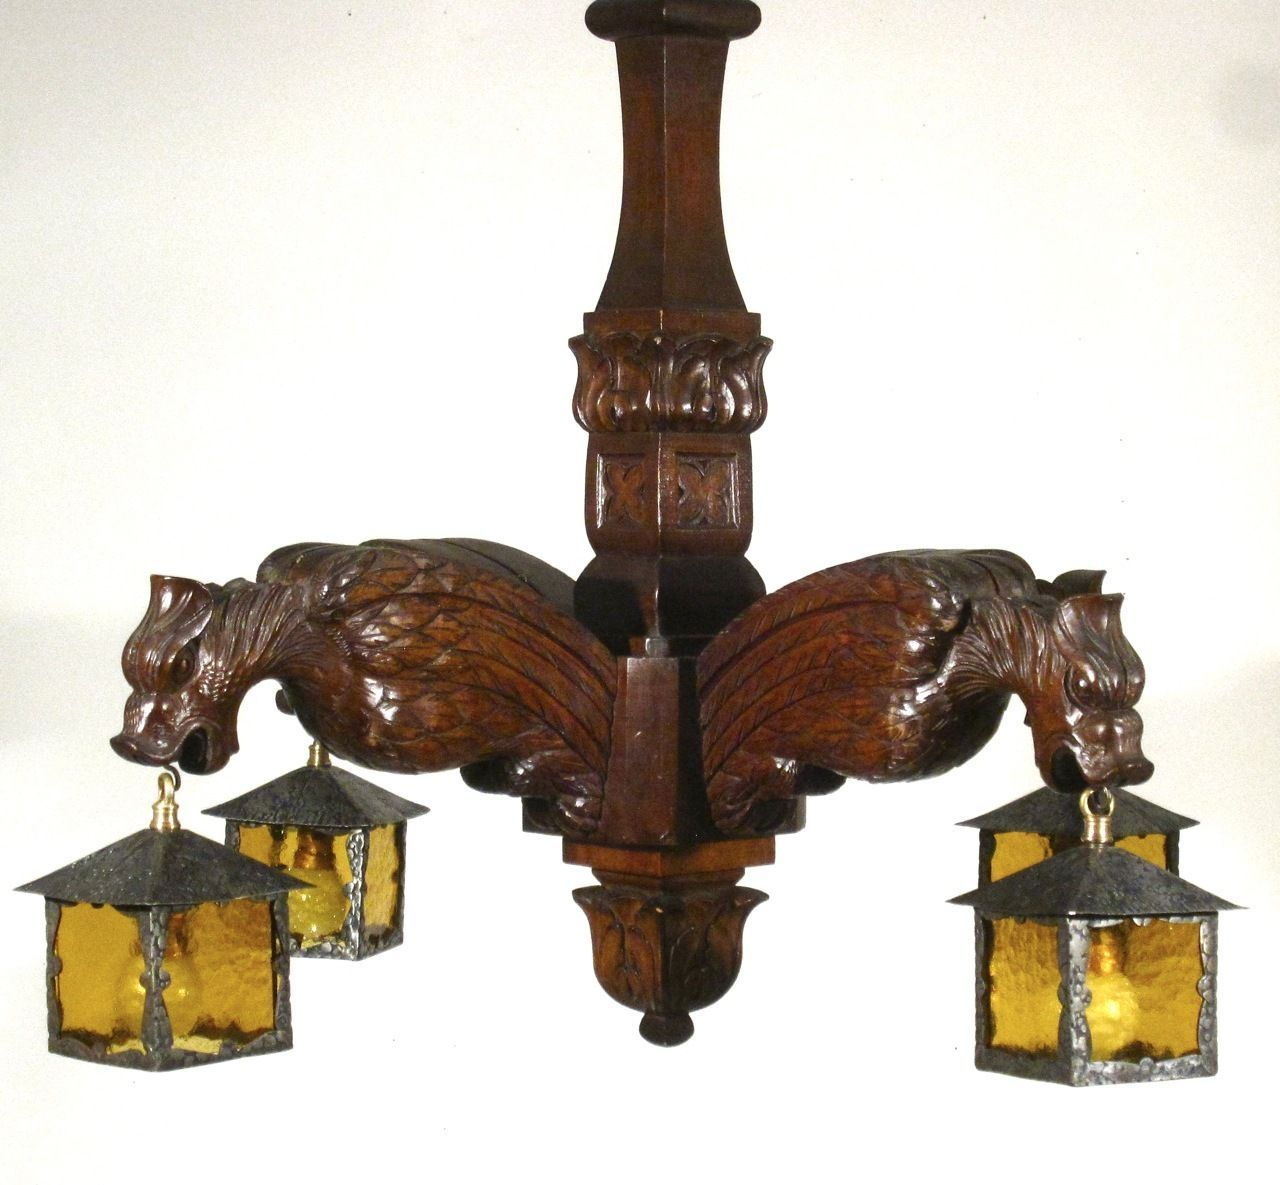 Antique French Gothic Gargoyle Wooden chandelier with Lanterns – Stores That Sell Chandeliers